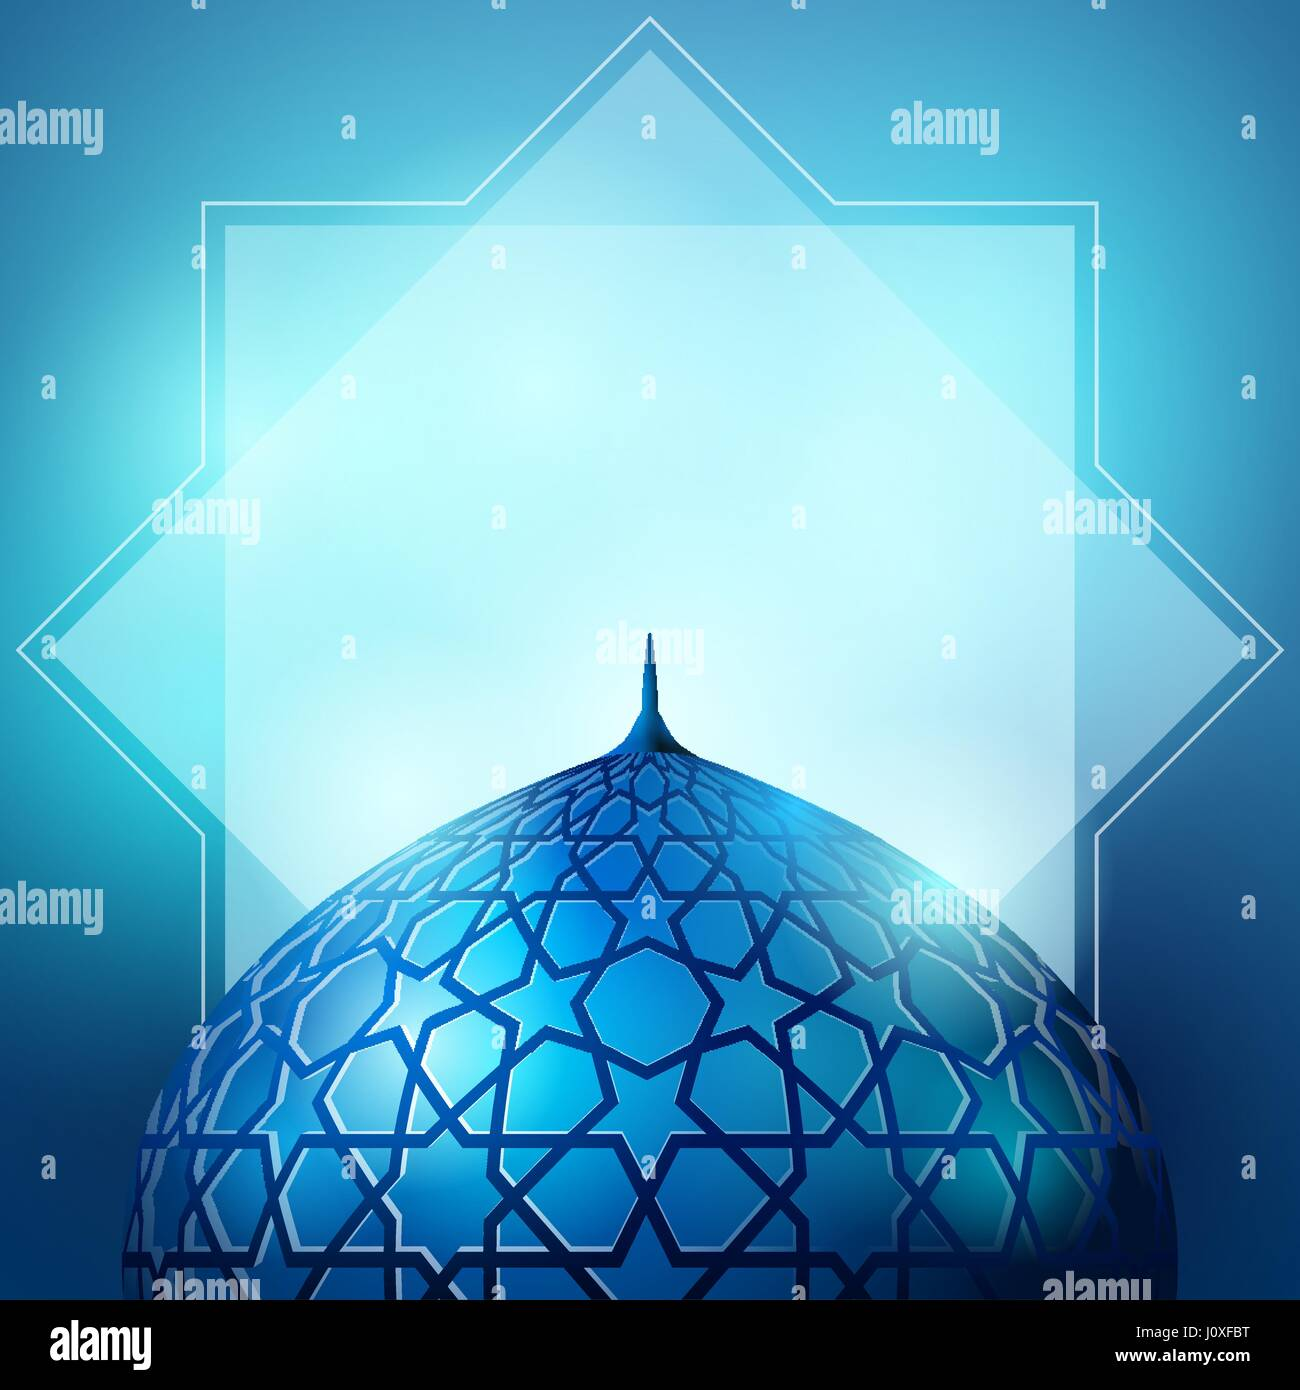 islamic design for greeting